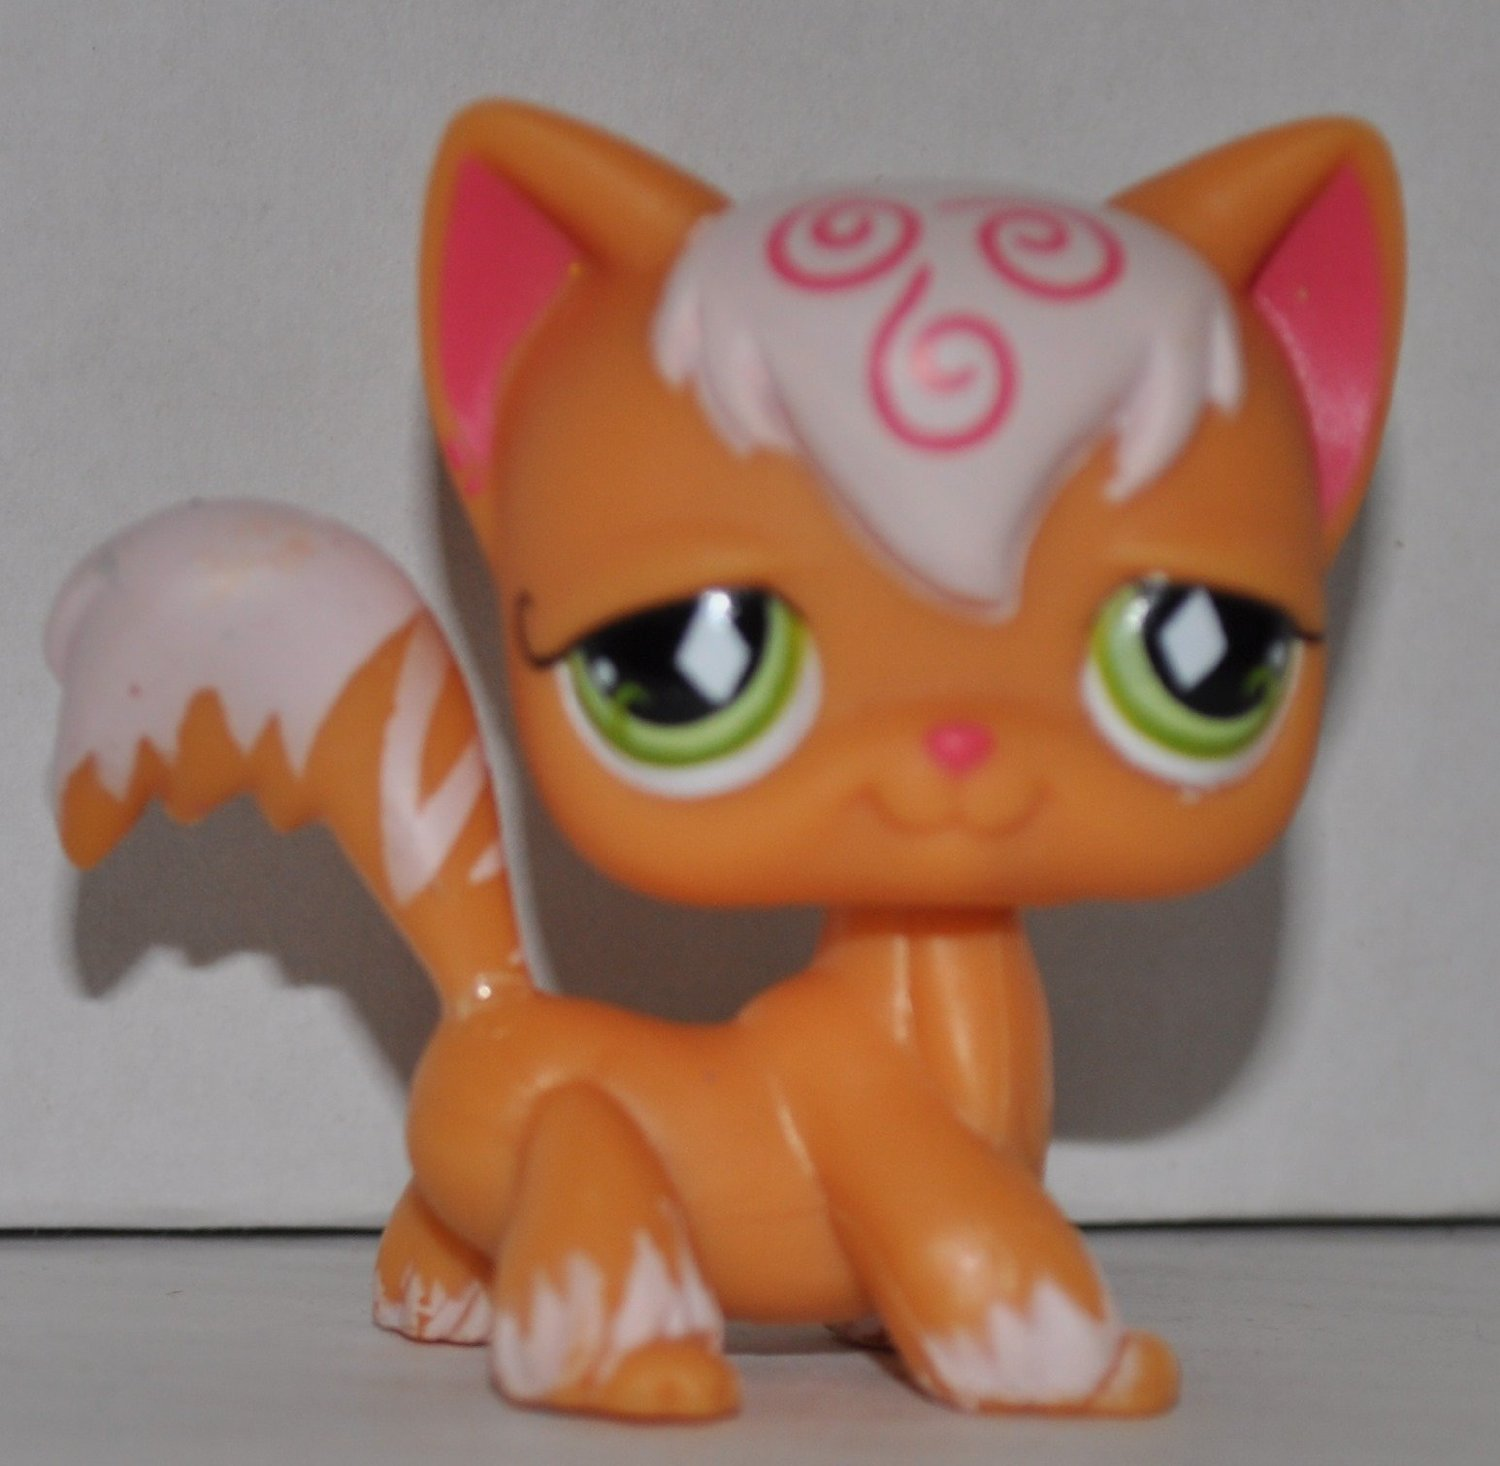 Longhair #511 Littlest Pet Shop Retired Toy LPS Collectible Replacement Single Figure Loose OOP